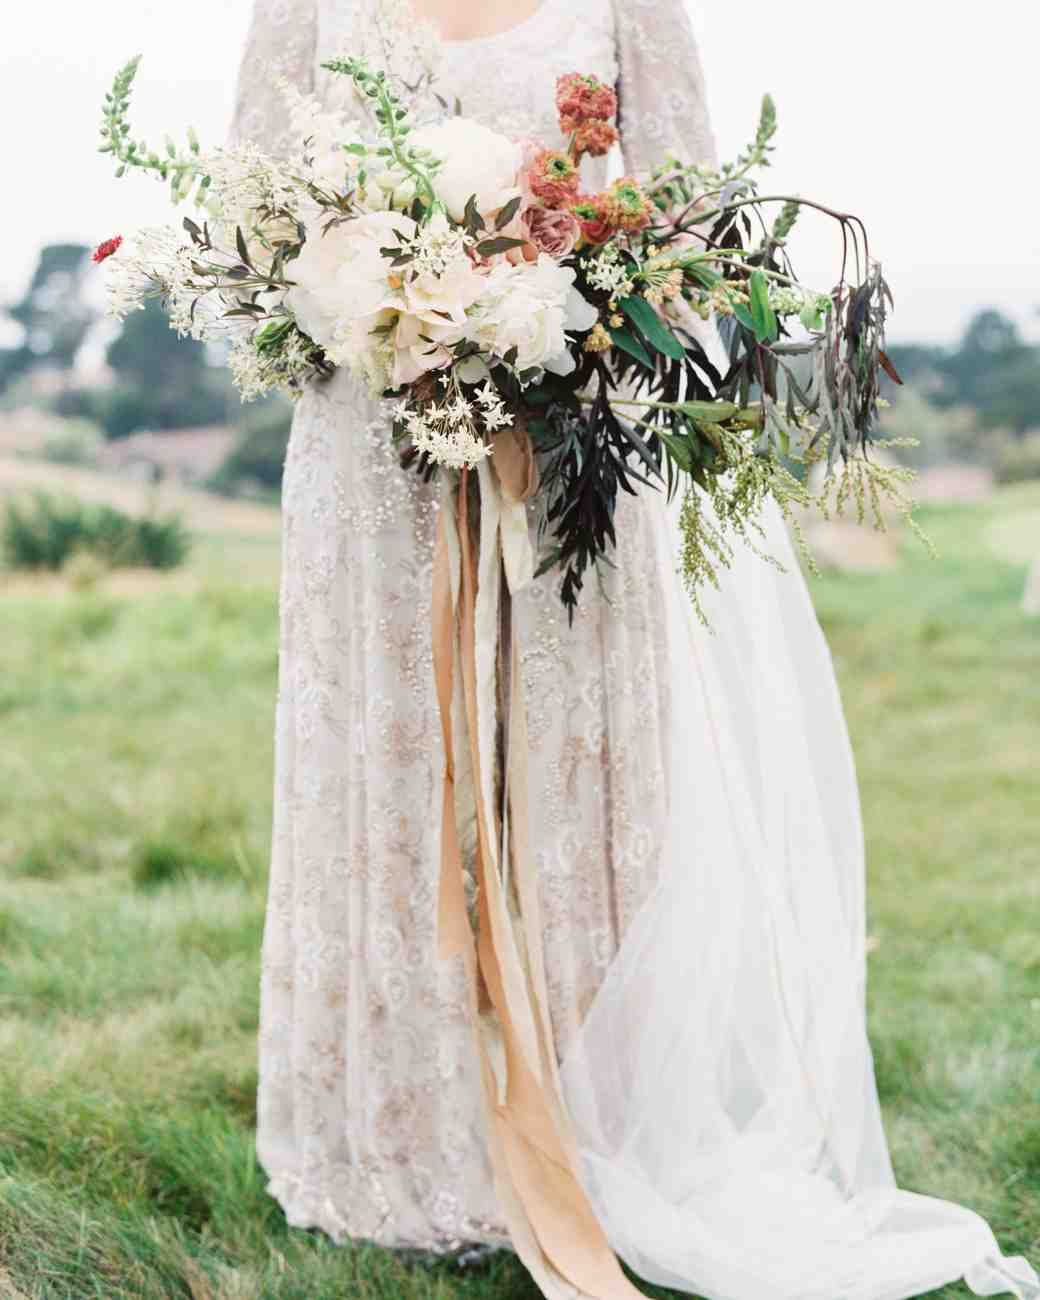 Flowers Wedding Ideas: Boho-Chic Wedding Ideas For Free-Spirited Brides And